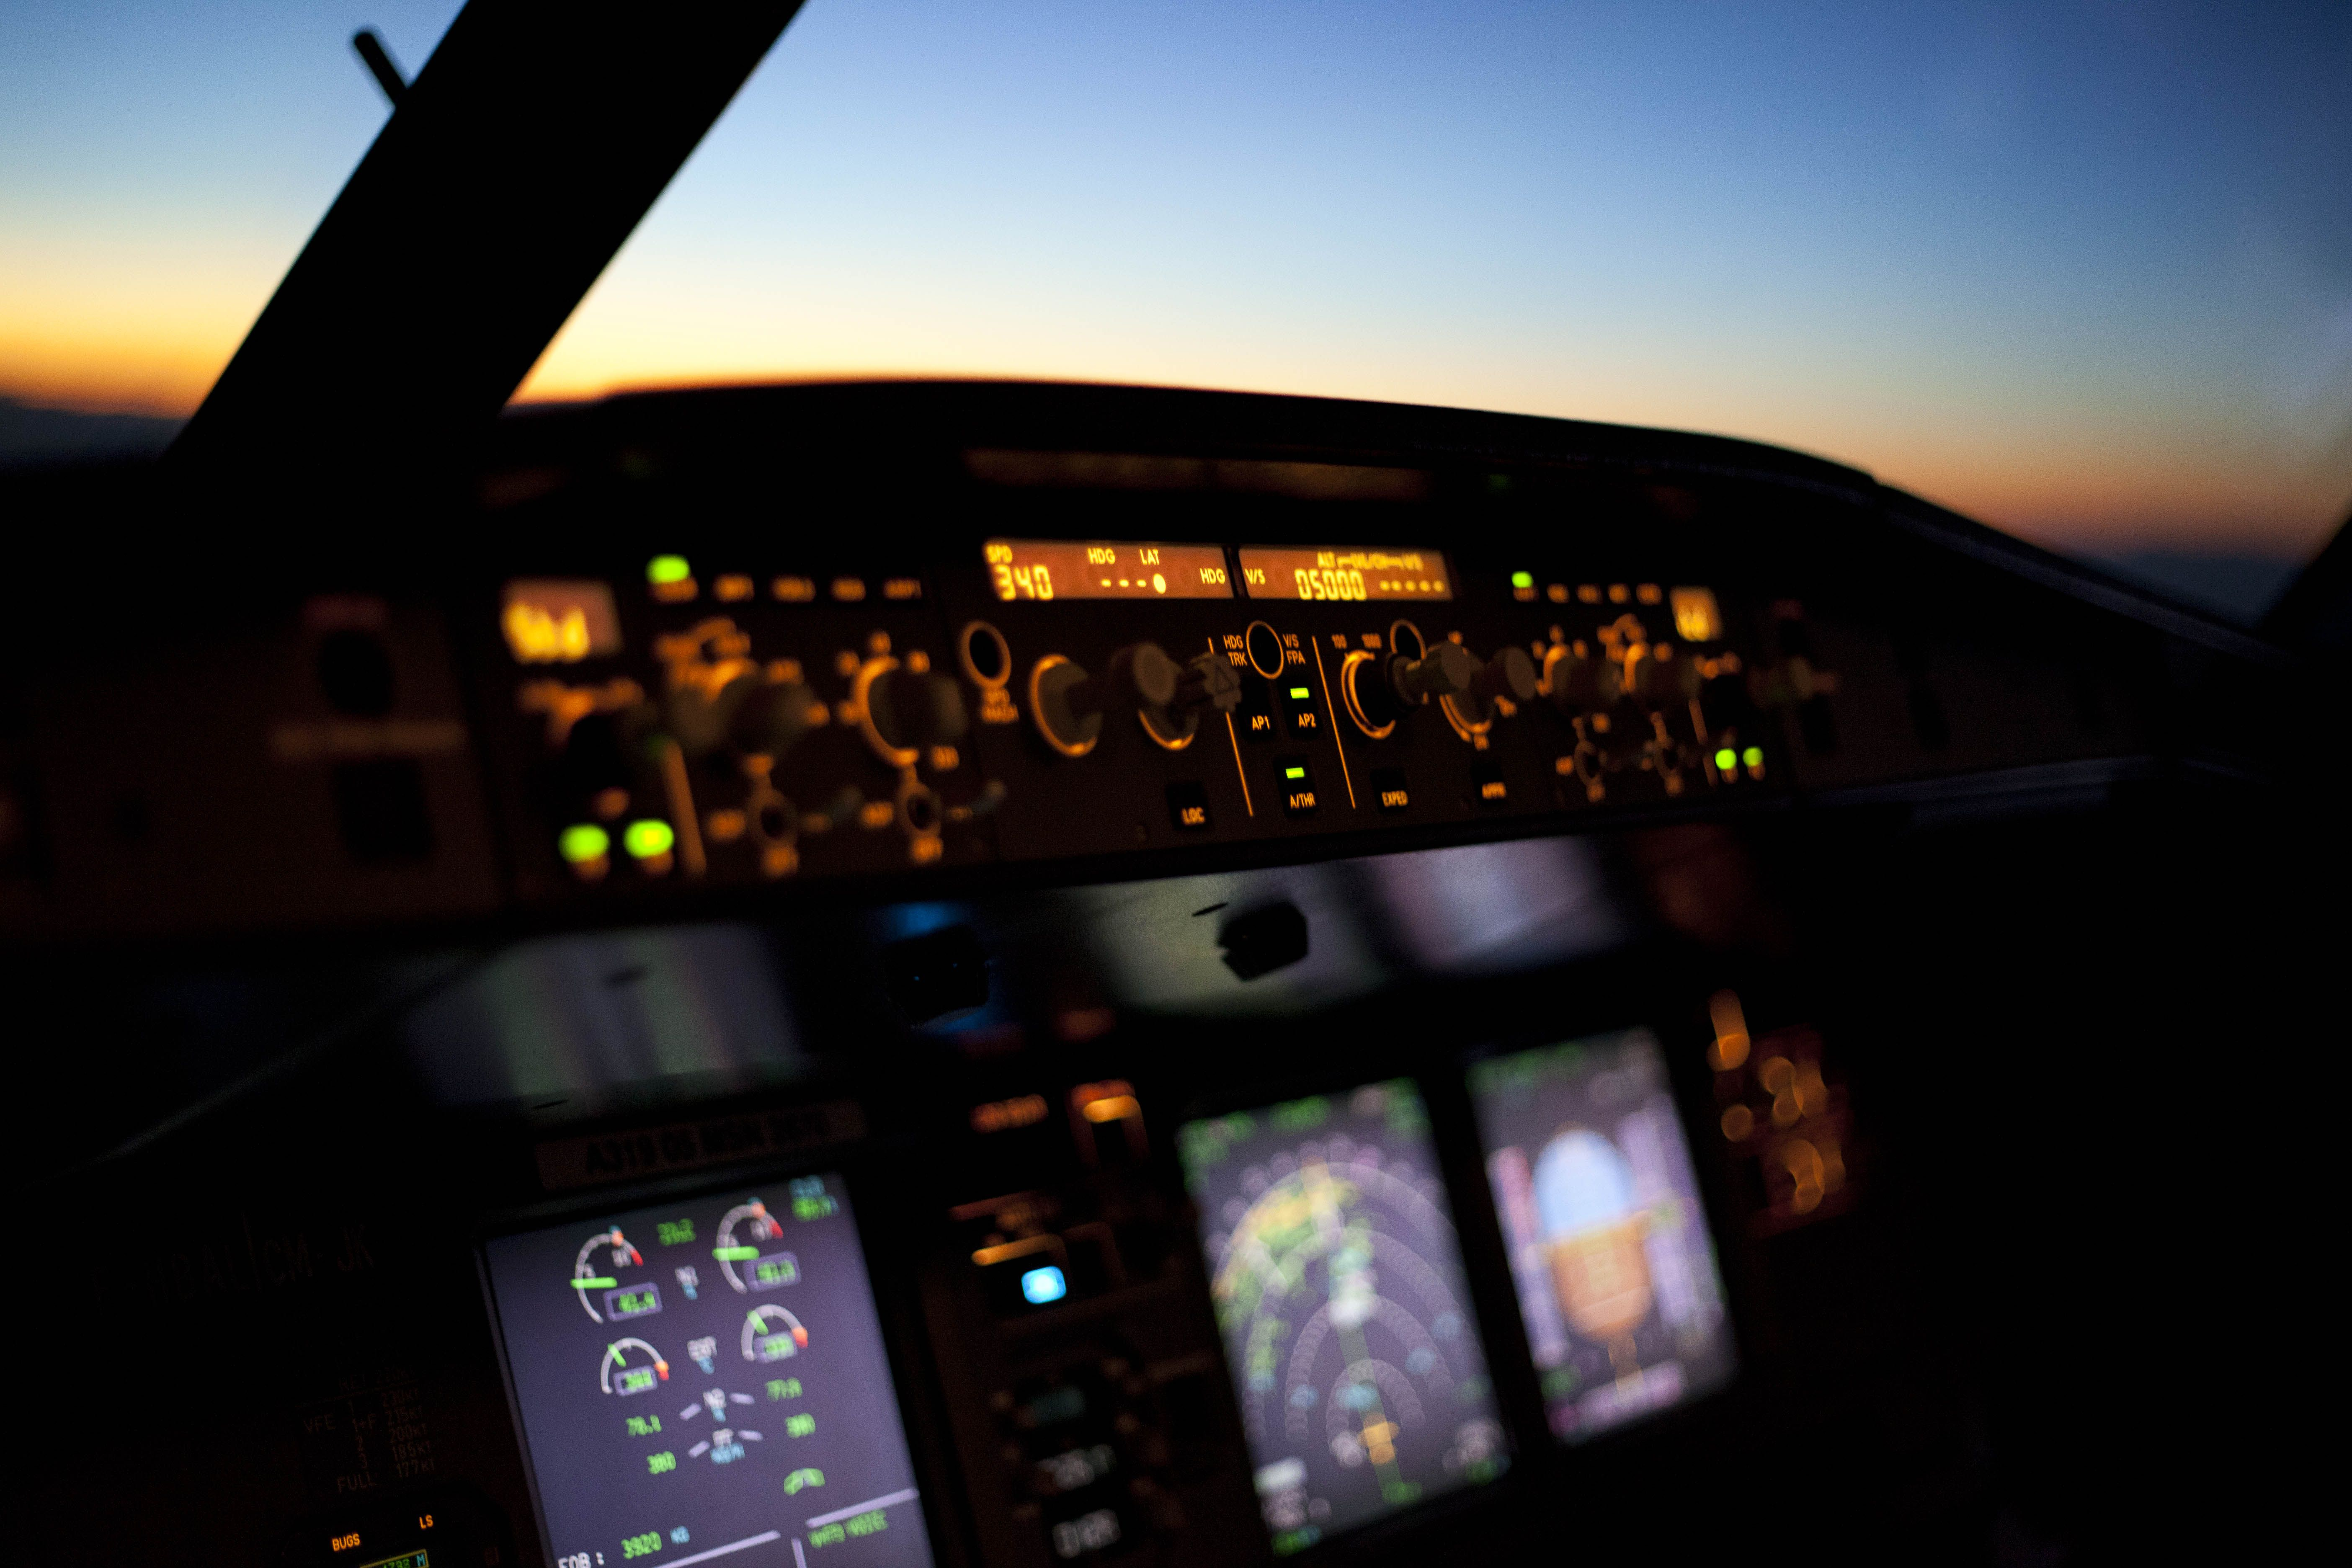 Airbus A320 Cockpit At Sunset